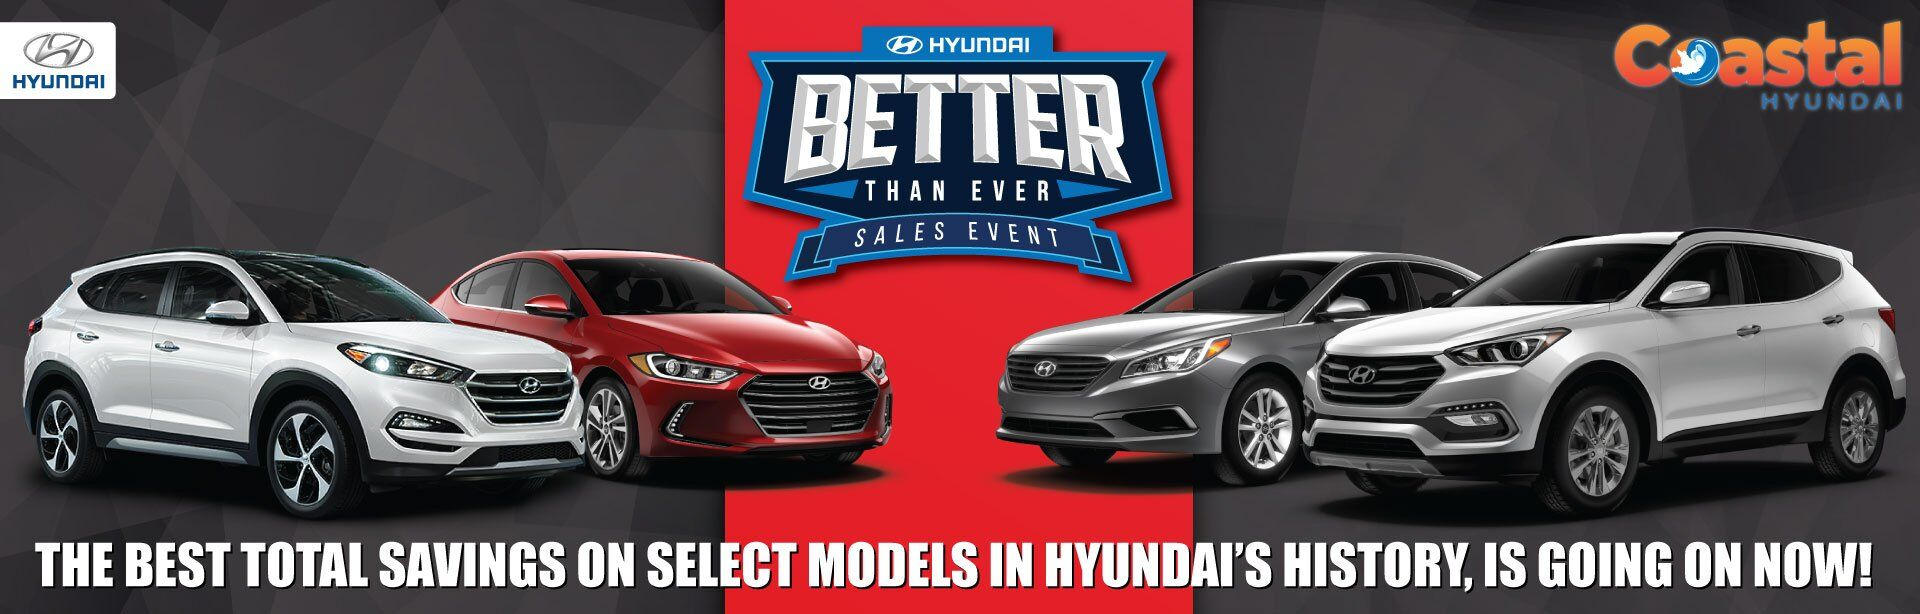 Coastal hyundai coupons